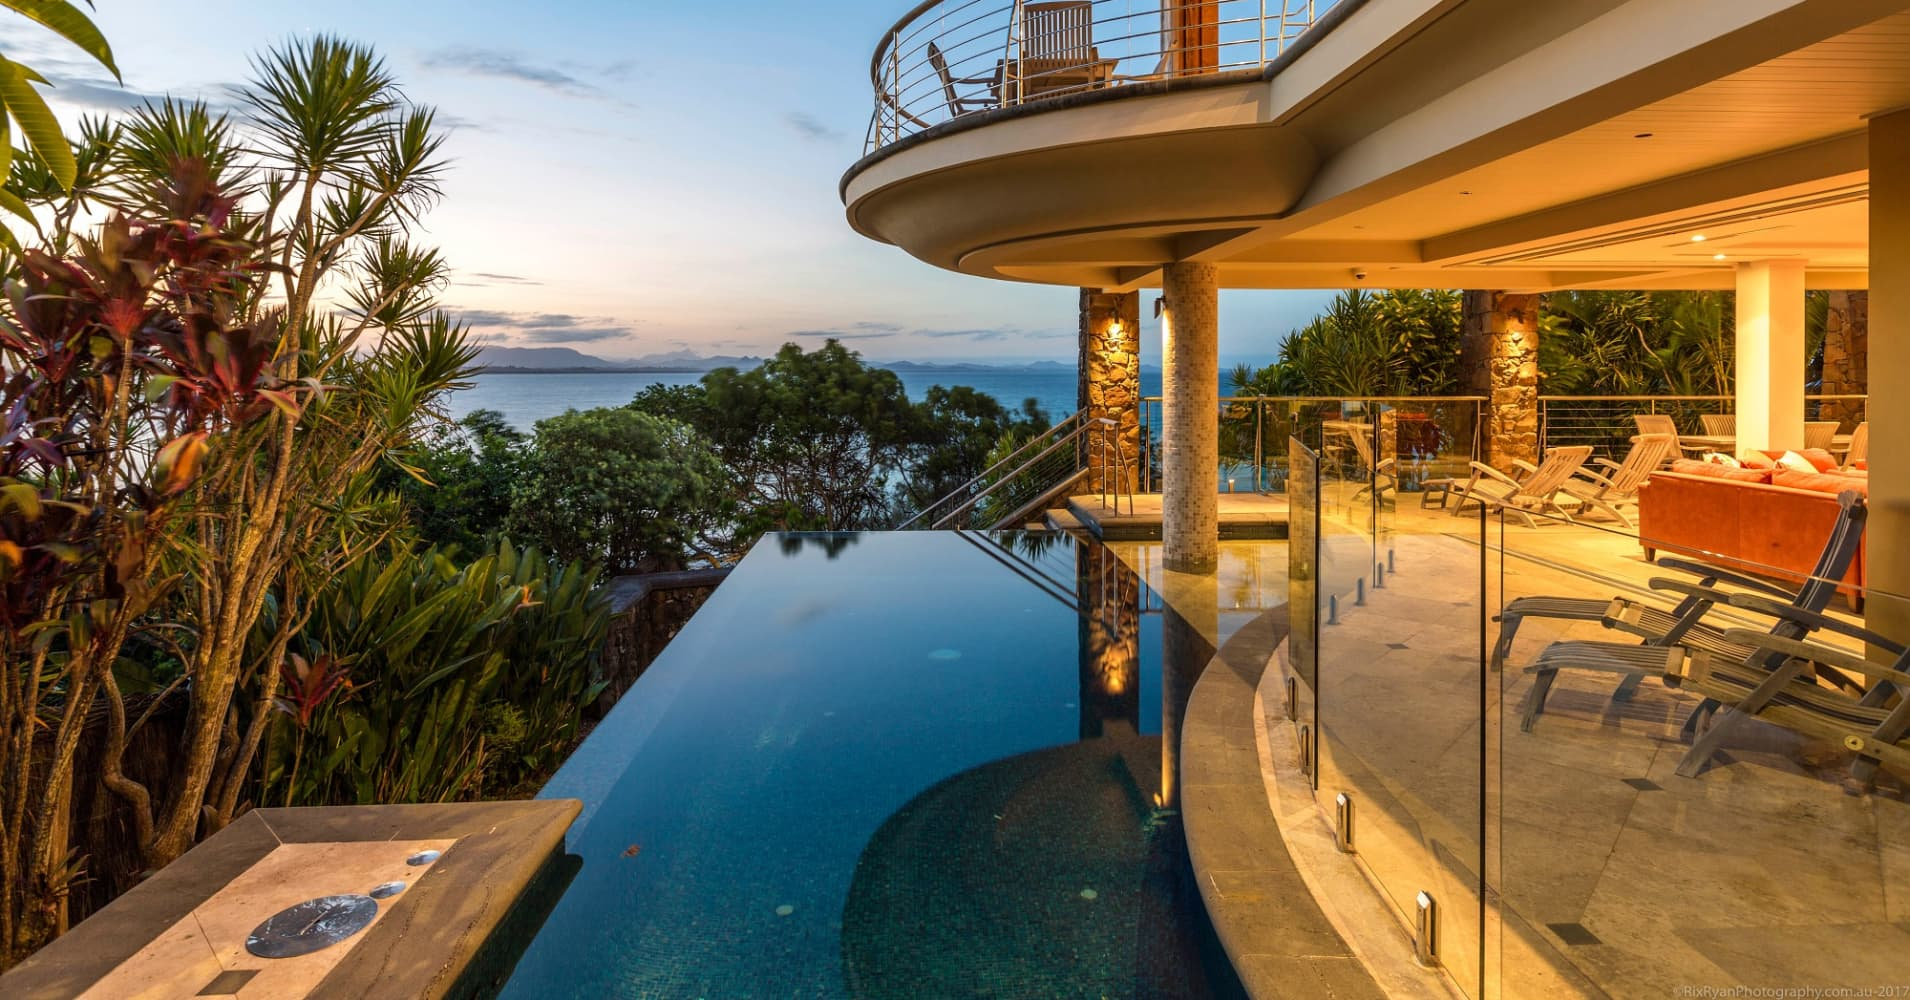 Thirdhome mansion in Byron Bay, Australia